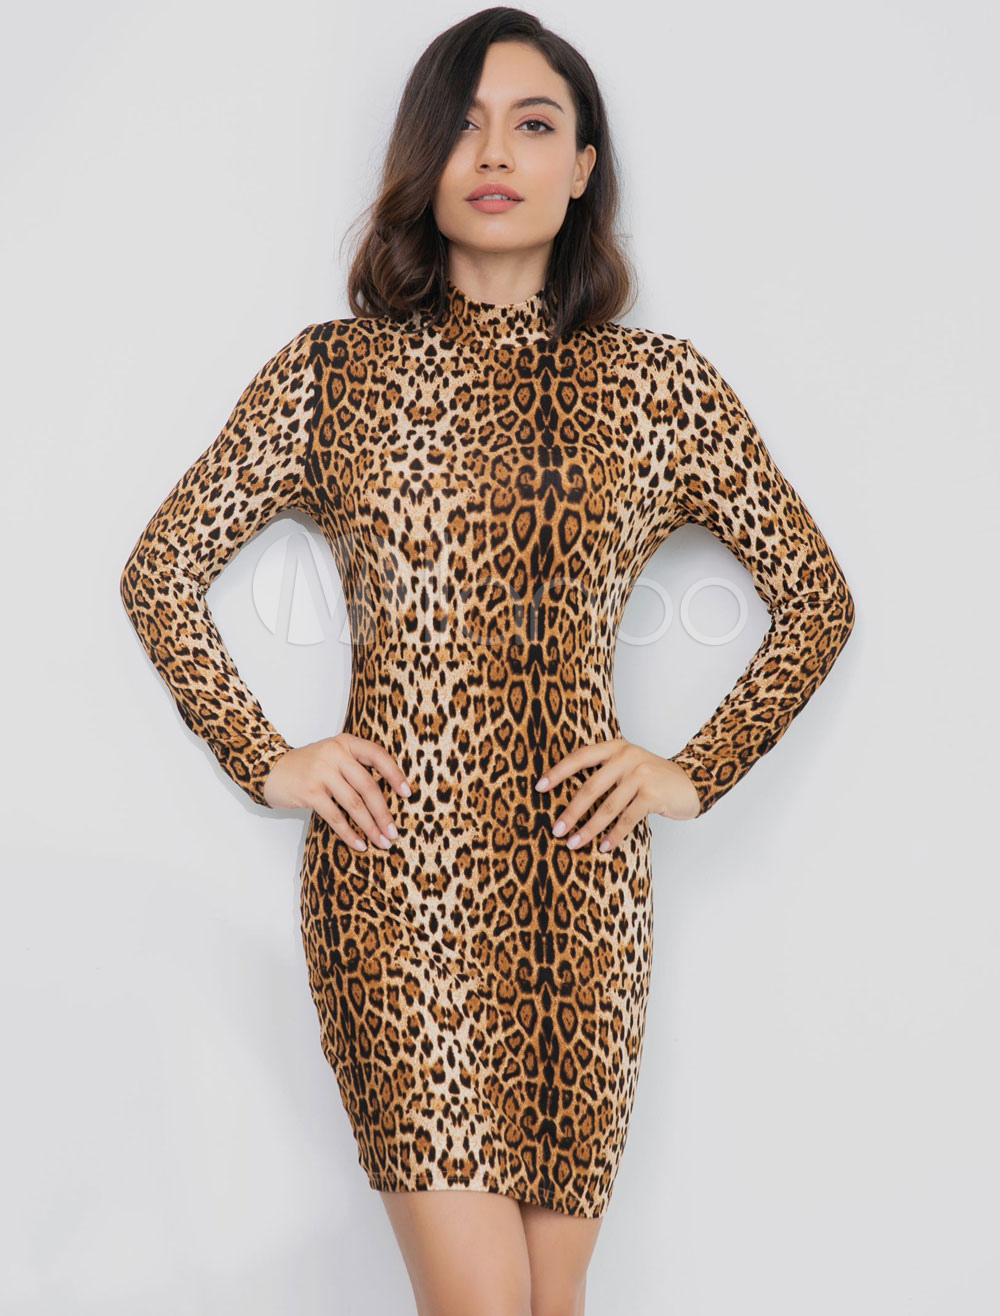 06c287df0a0e Leopard Bodycon Dress Long Sleeve Stand Collar Sexy Midi Dress For ...